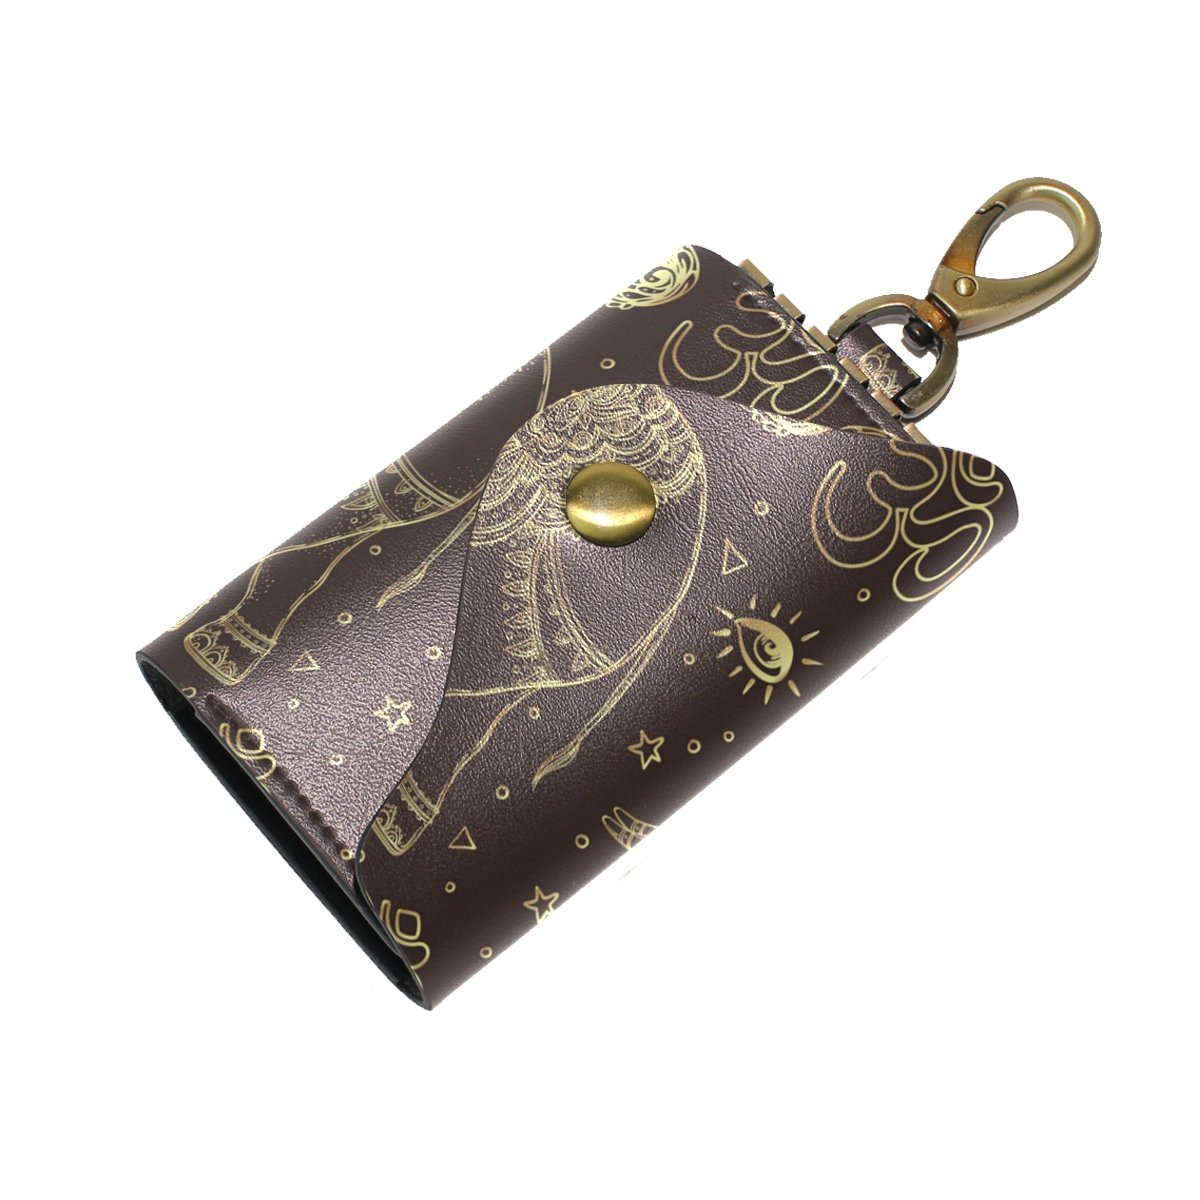 DEYYA Ethnic Mandala Elephant Tribal Leather Key Case Wallets Unisex Keychain Key Holder with 6 Hooks Snap Closure